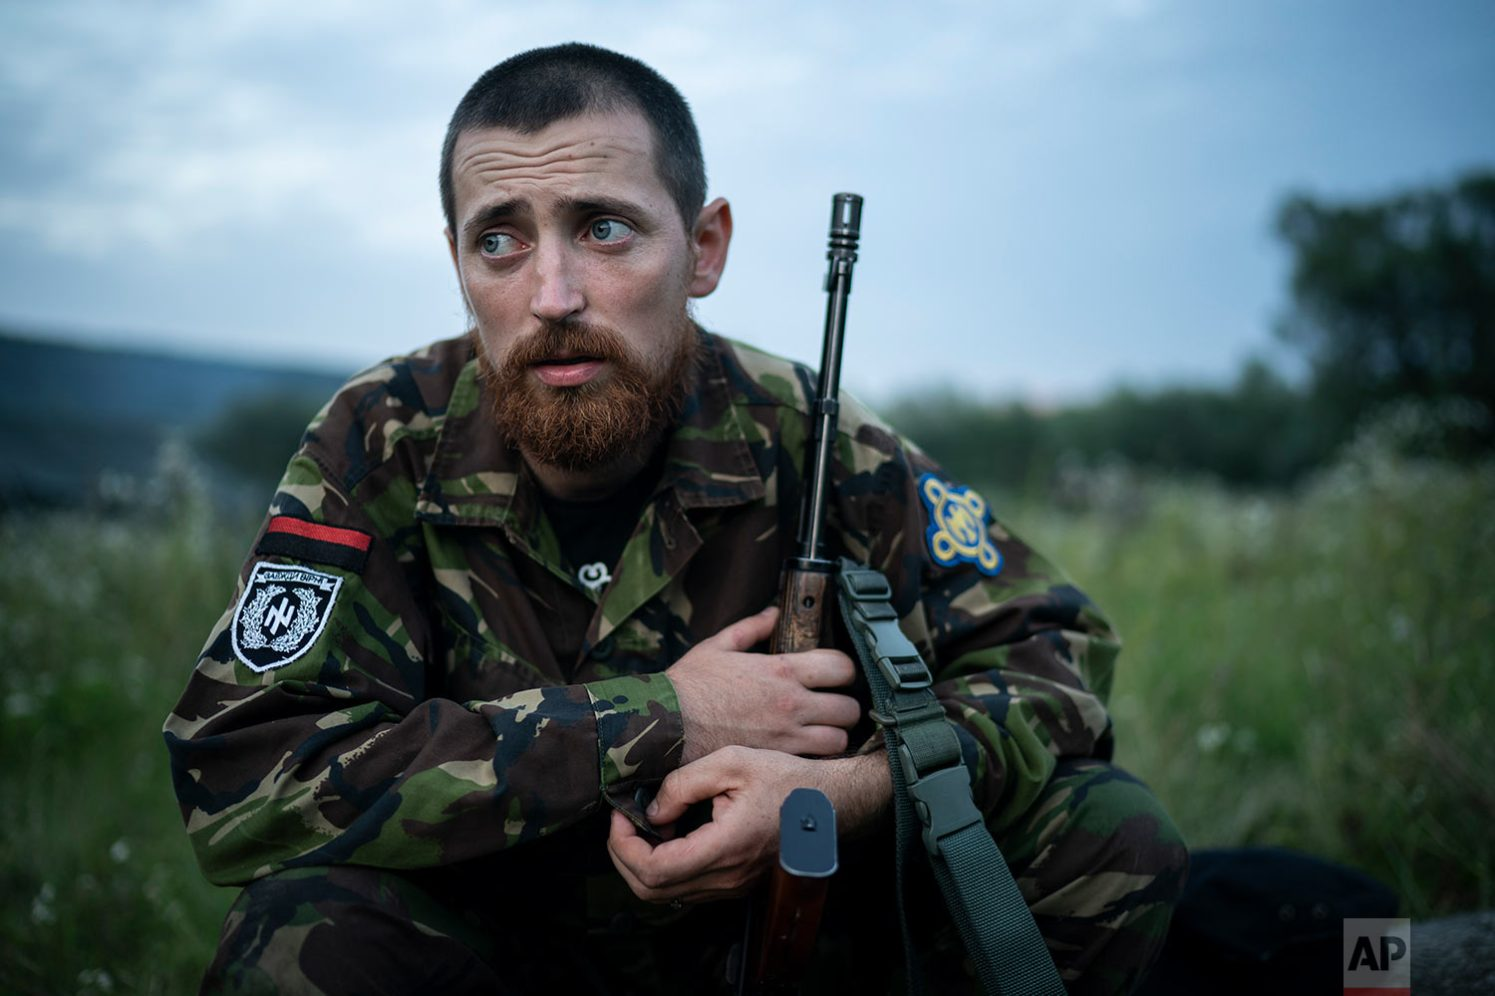 """Yuri """"Chornota"""" Cherkashin, head of Sokil (Falcon), the youth wing of the nationalist Svoboda party, sits with his AK-47 rifle at the """"Temper of will"""" summer camp on July 29, 2018, in a village near Ternopil, Ukraine. """"We never aim guns at people,"""" he tells his campers. """"But we don't count separatists, little green men, occupiers from Moscow as people, so we can and should aim at them."""" (AP Photo/Felipe Dana)"""